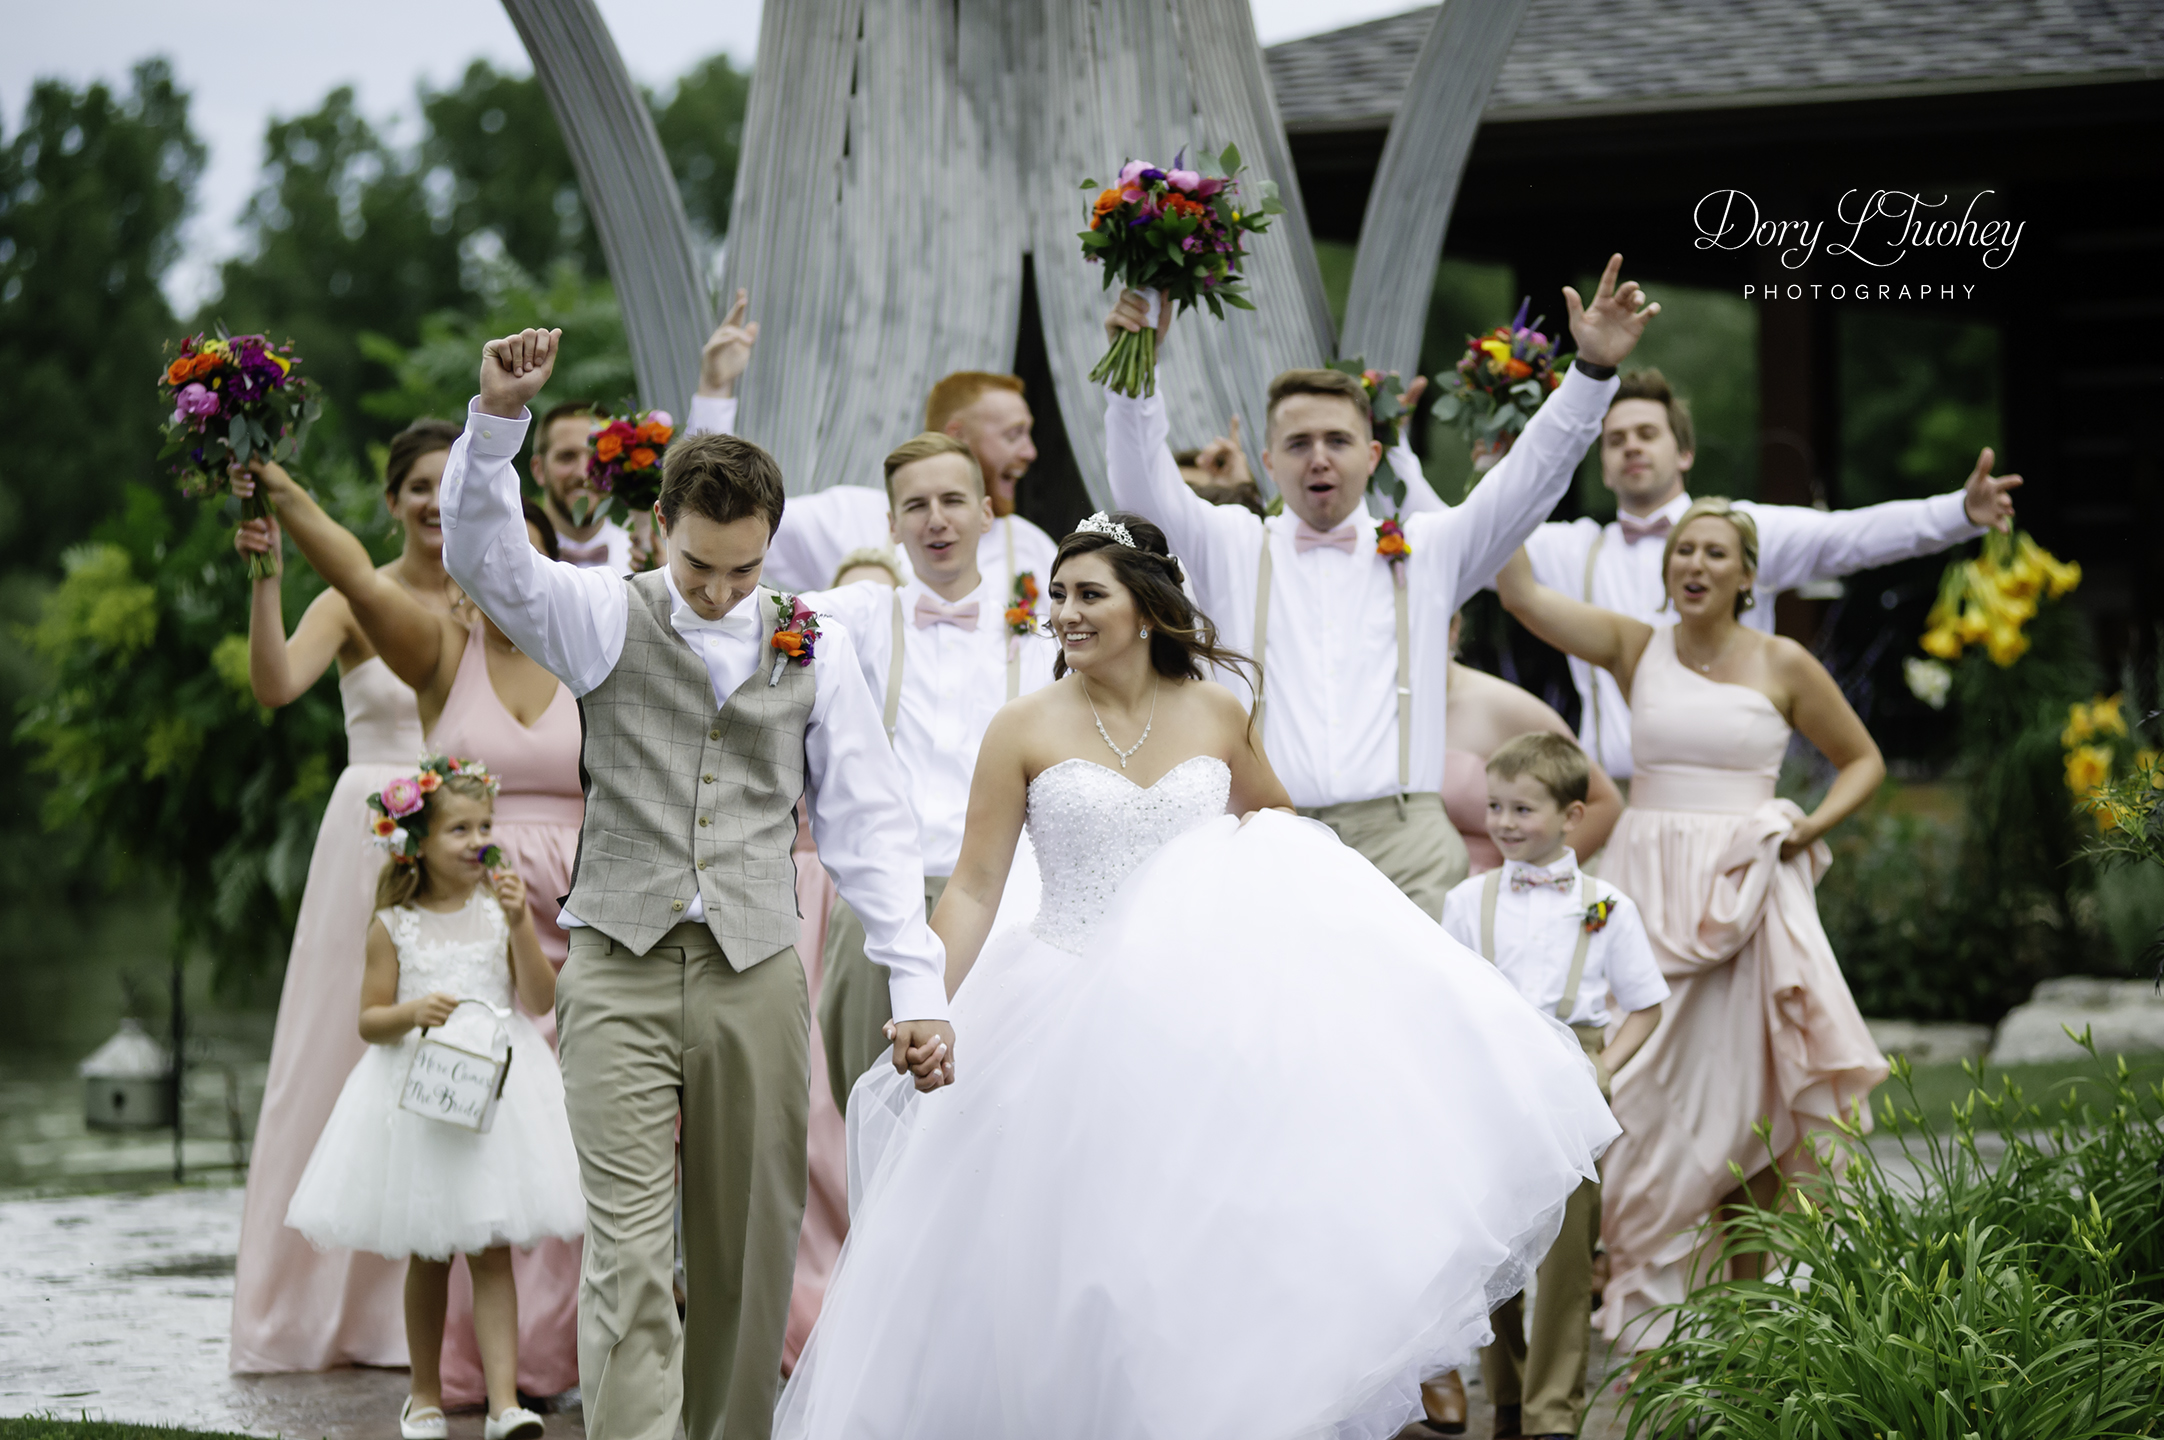 Green_Bay_wedding_photographer_olde_41_harley_first_look_dad_bride_vandervest_06.jpg